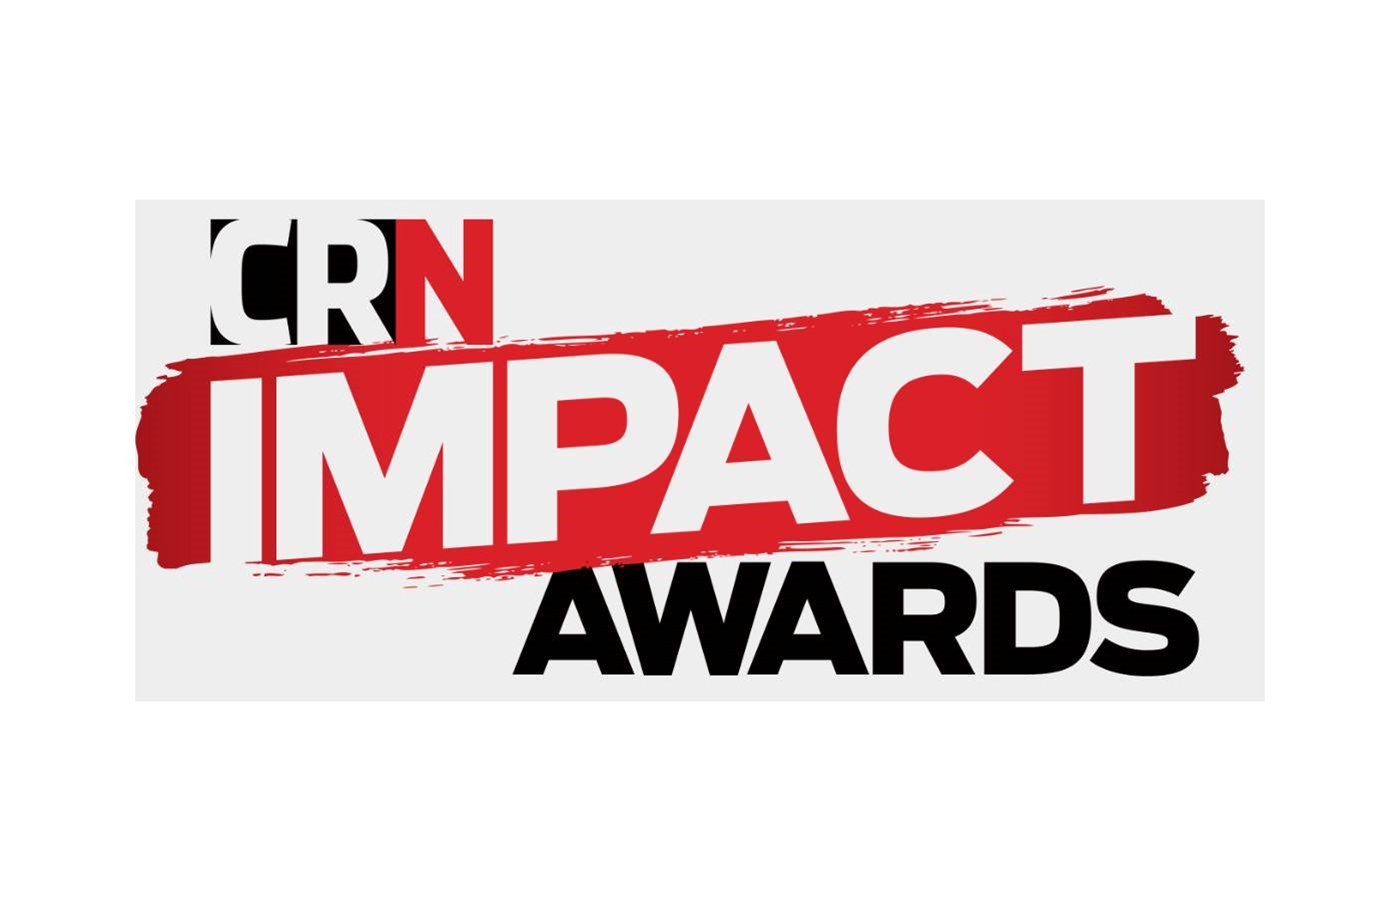 2019 CRN IMPACT Awards - the finalists revealed!